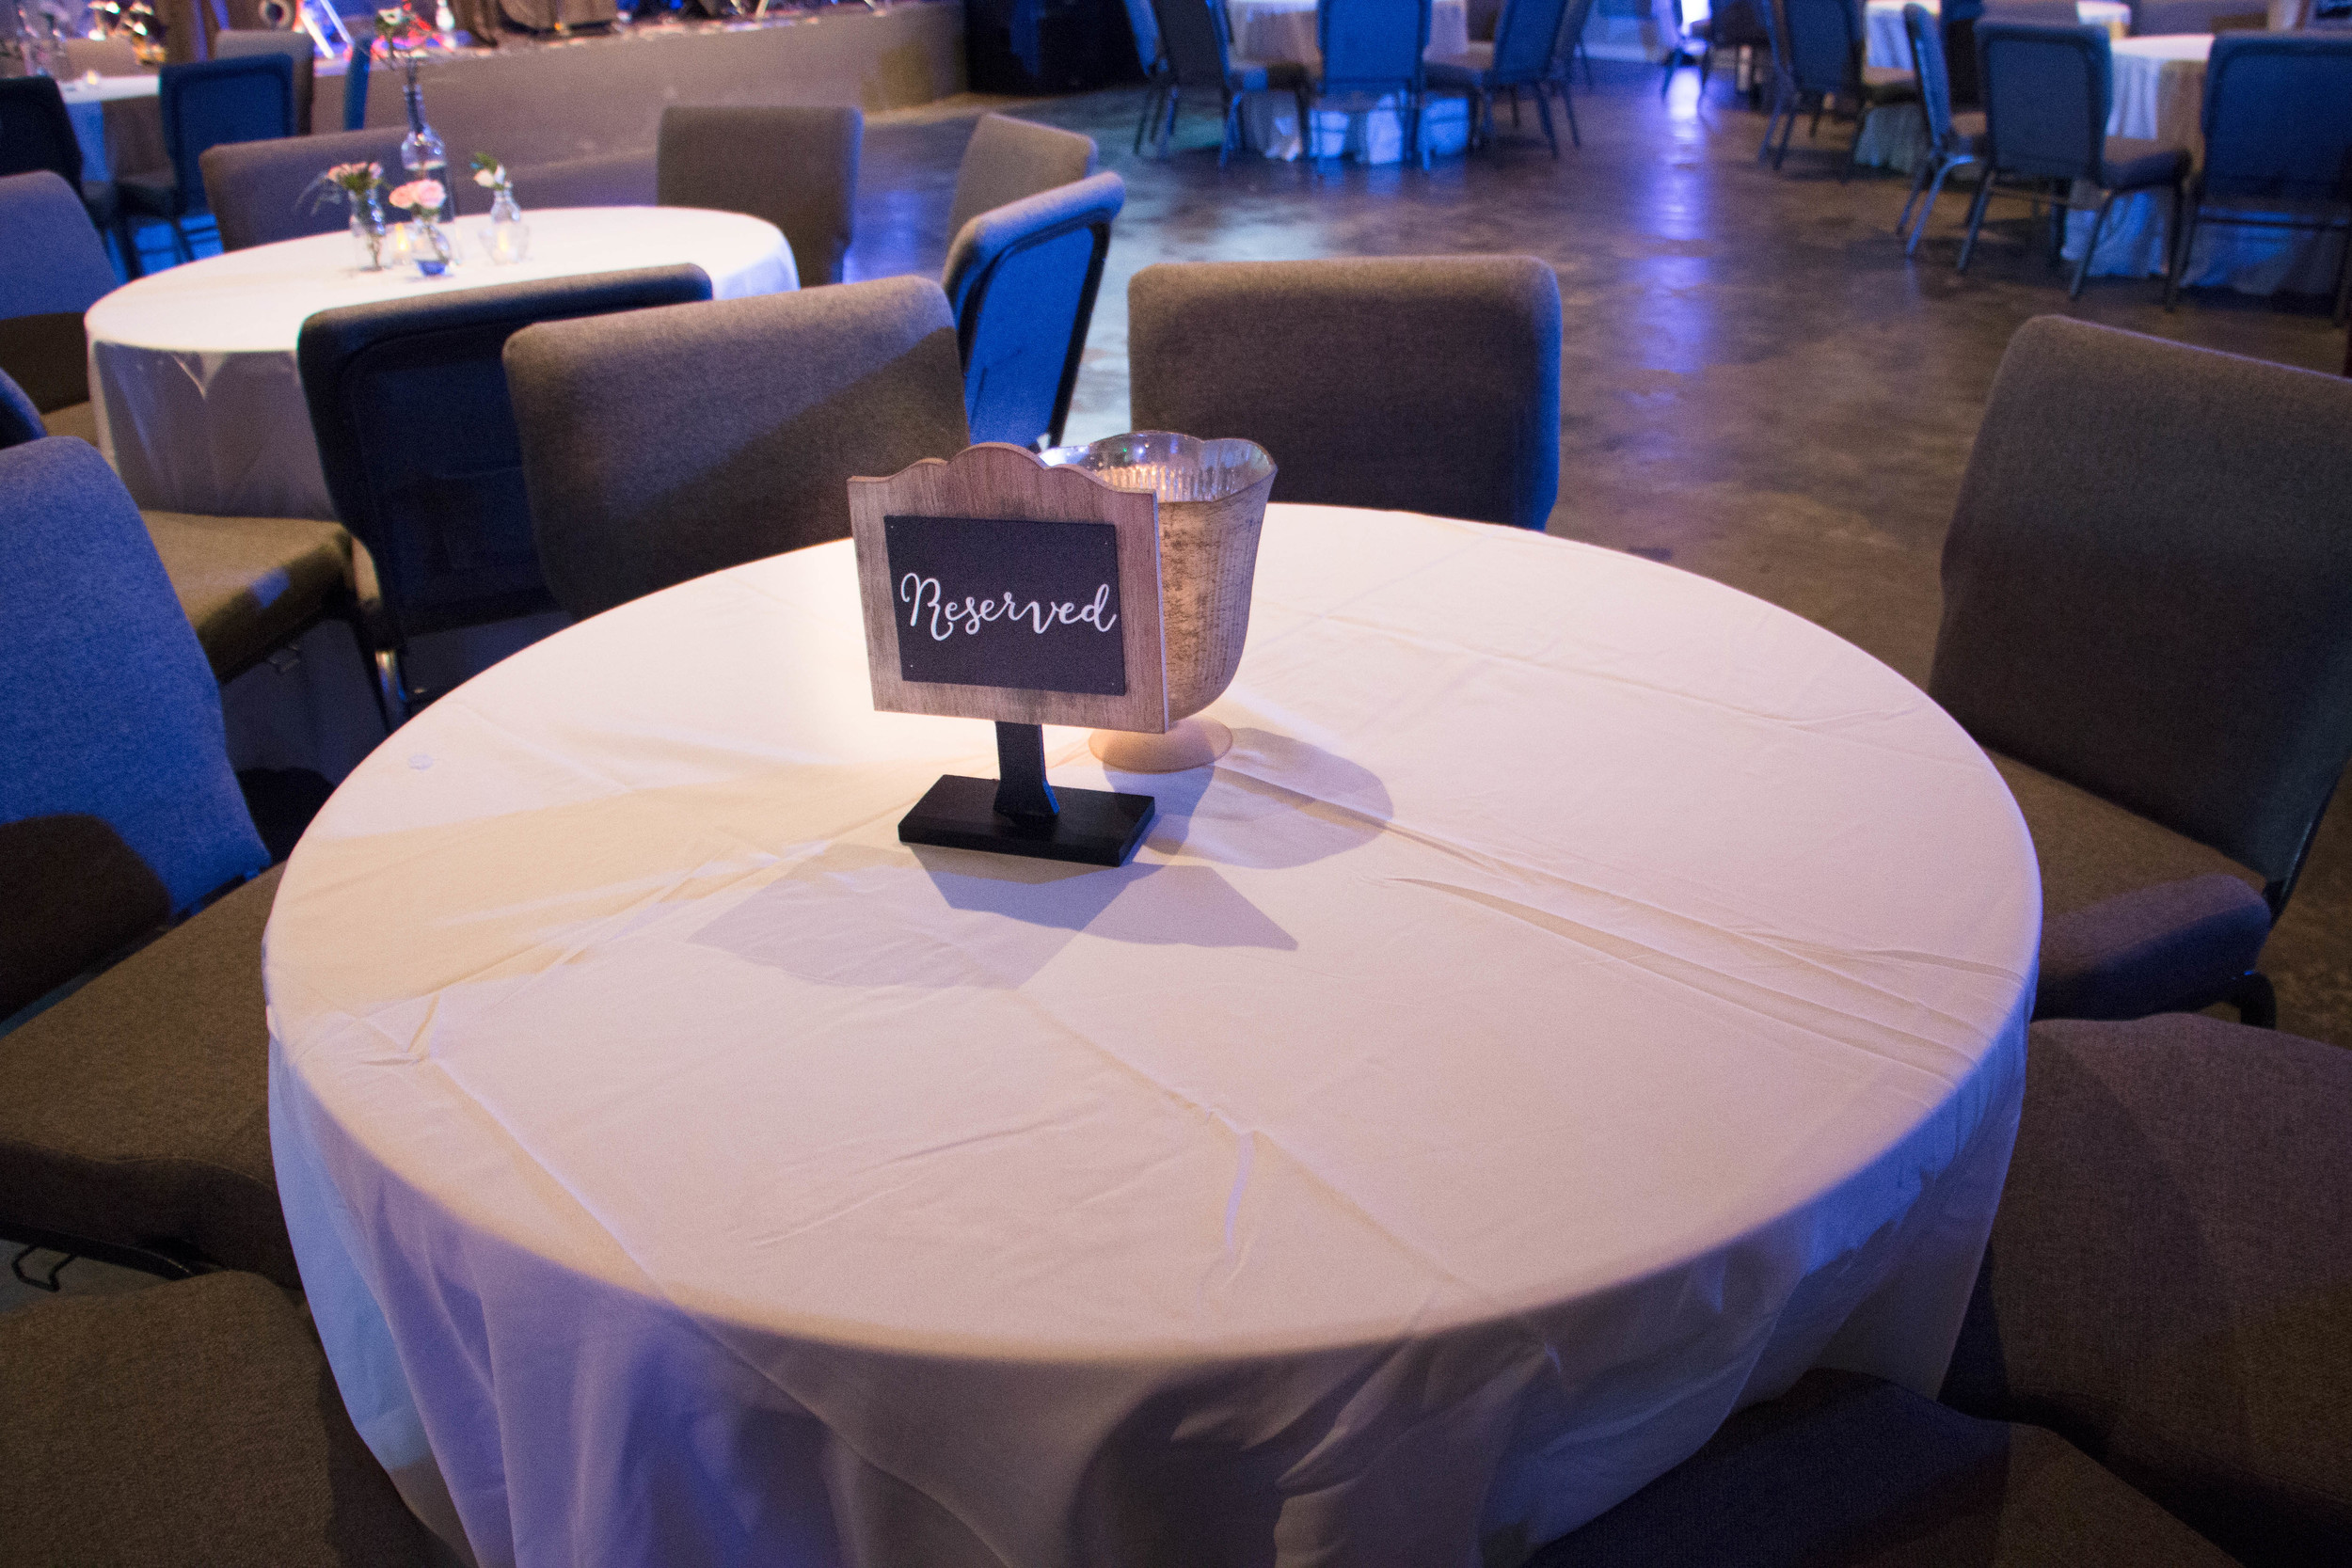 reserved table sign.jpg